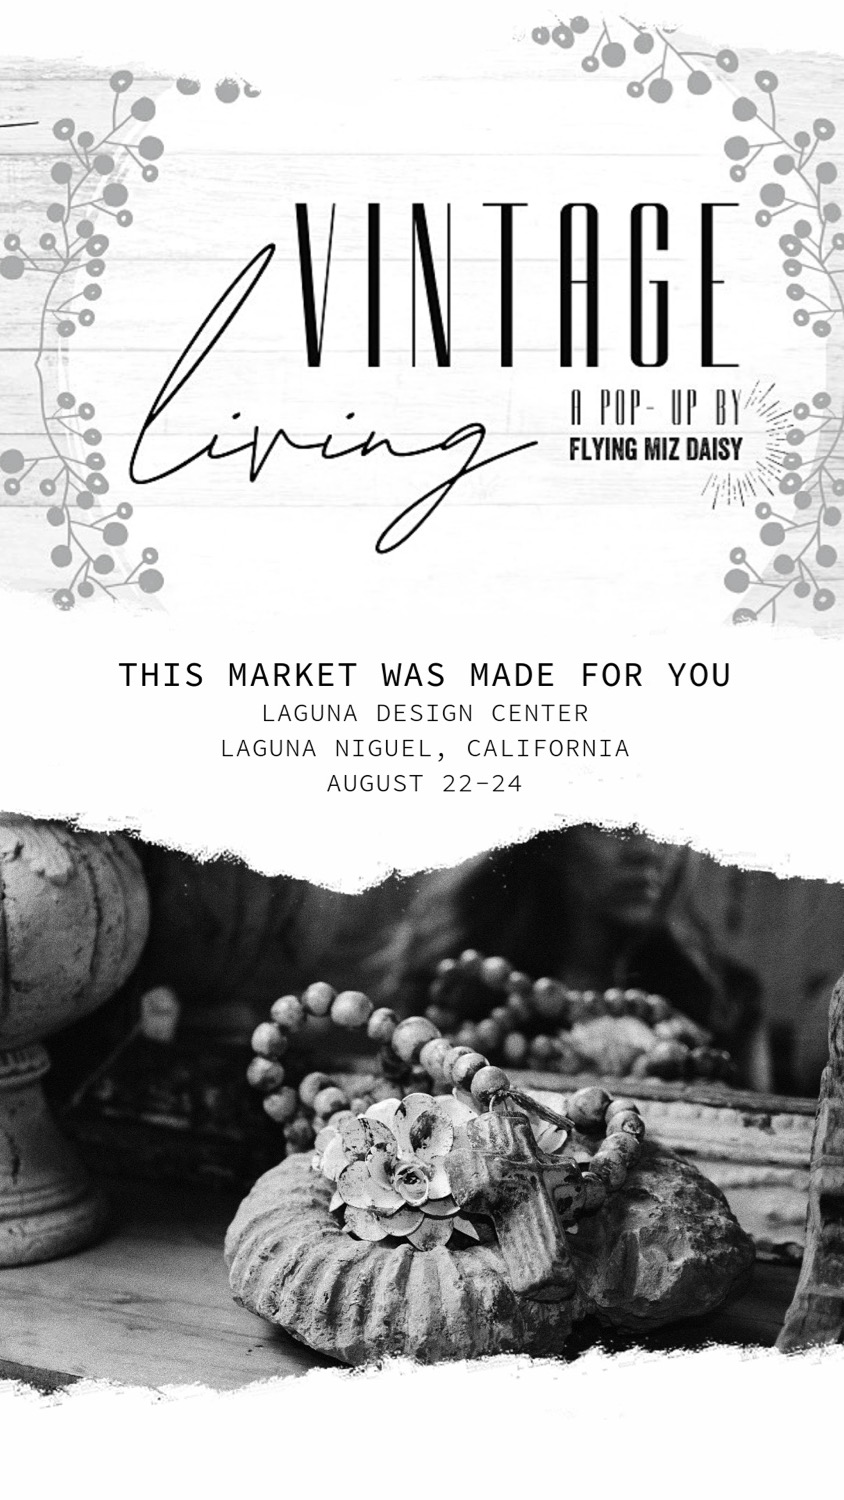 You're invited! Come see the amazing vintage decor from The Salvage Co. in Laguna Niguel, California.